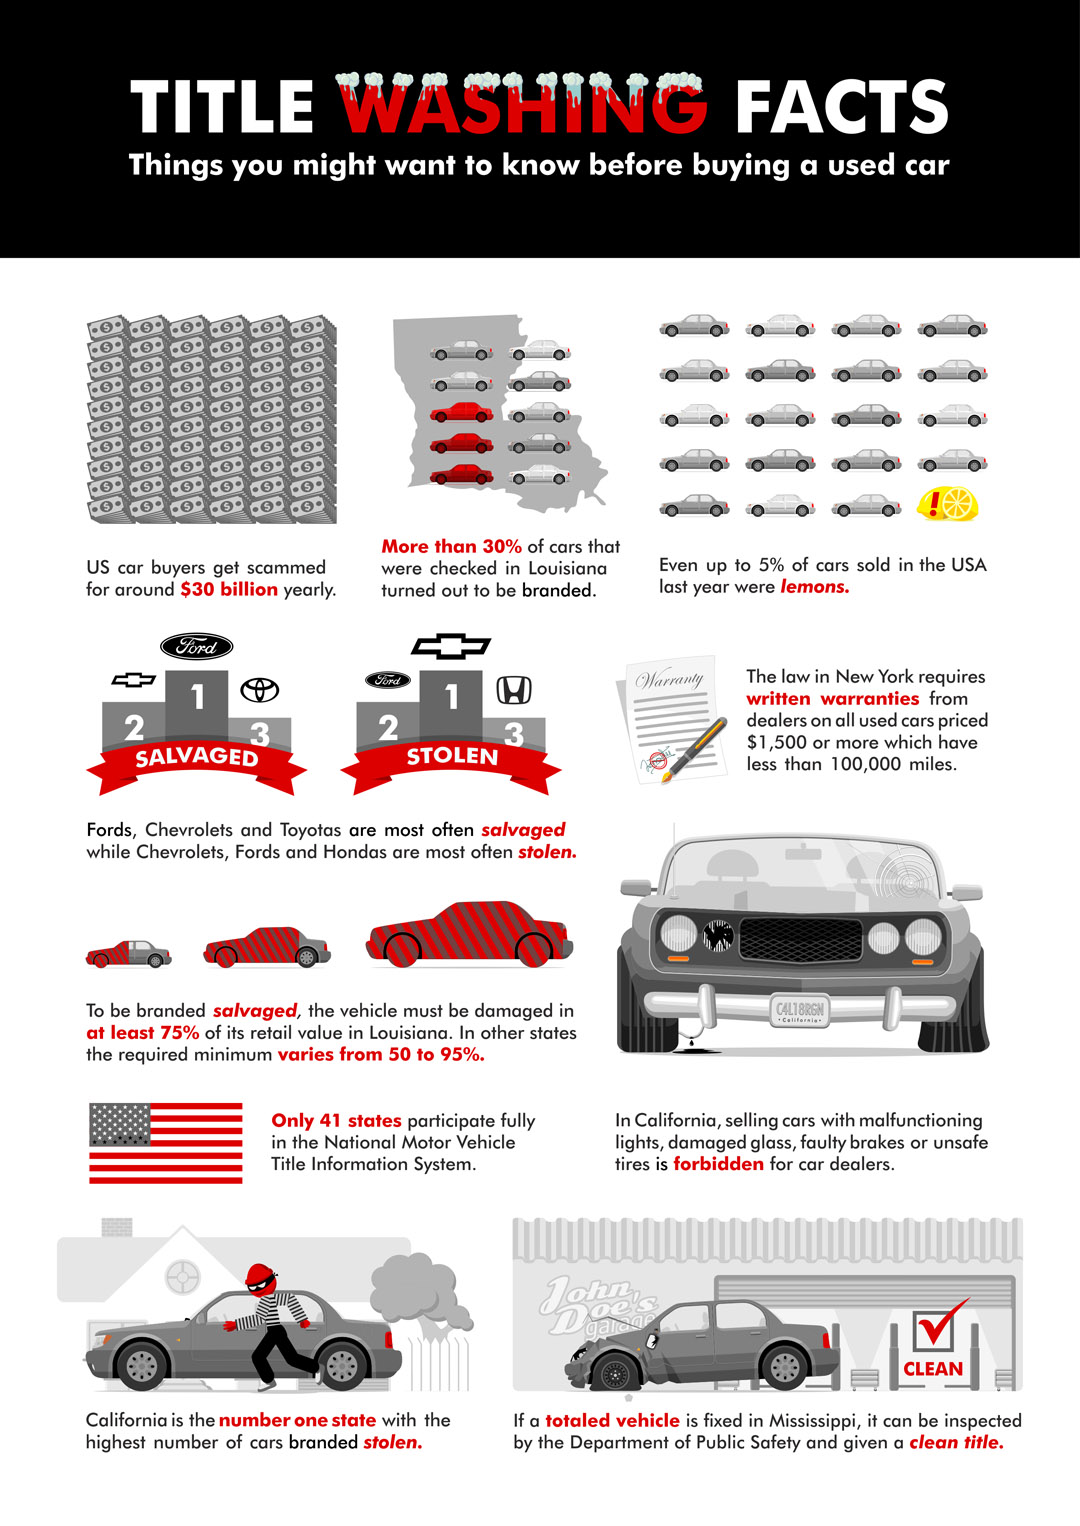 Washing-Facts-before-buying-used-car-infographic-plaza